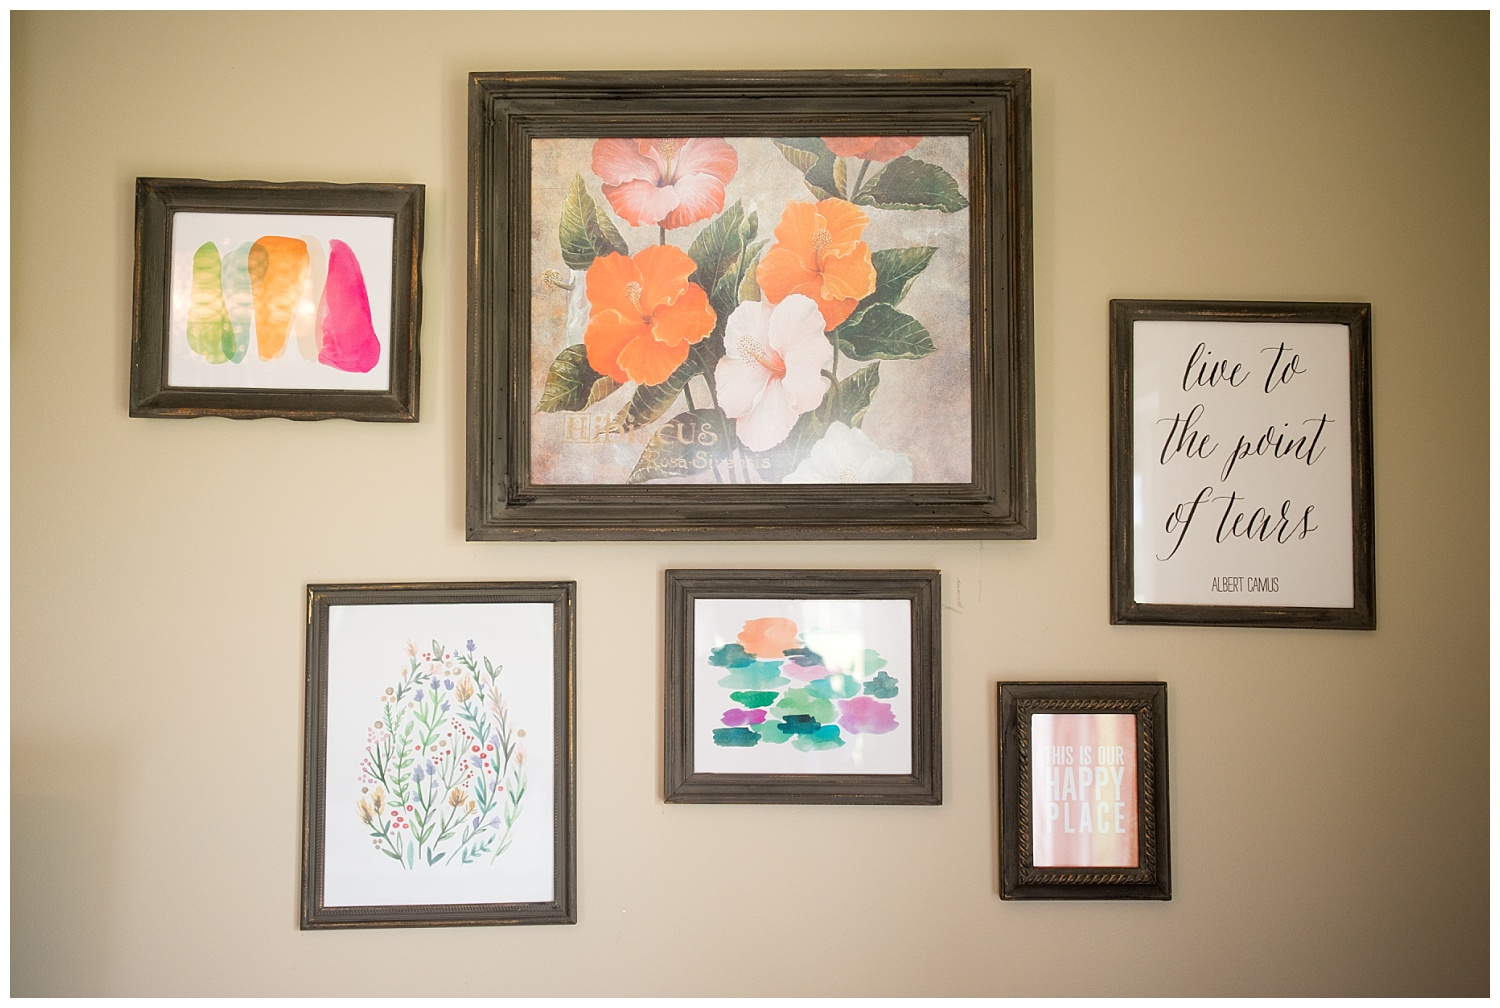 Speaking of frame sets.  This is one of many that adorn her walls.